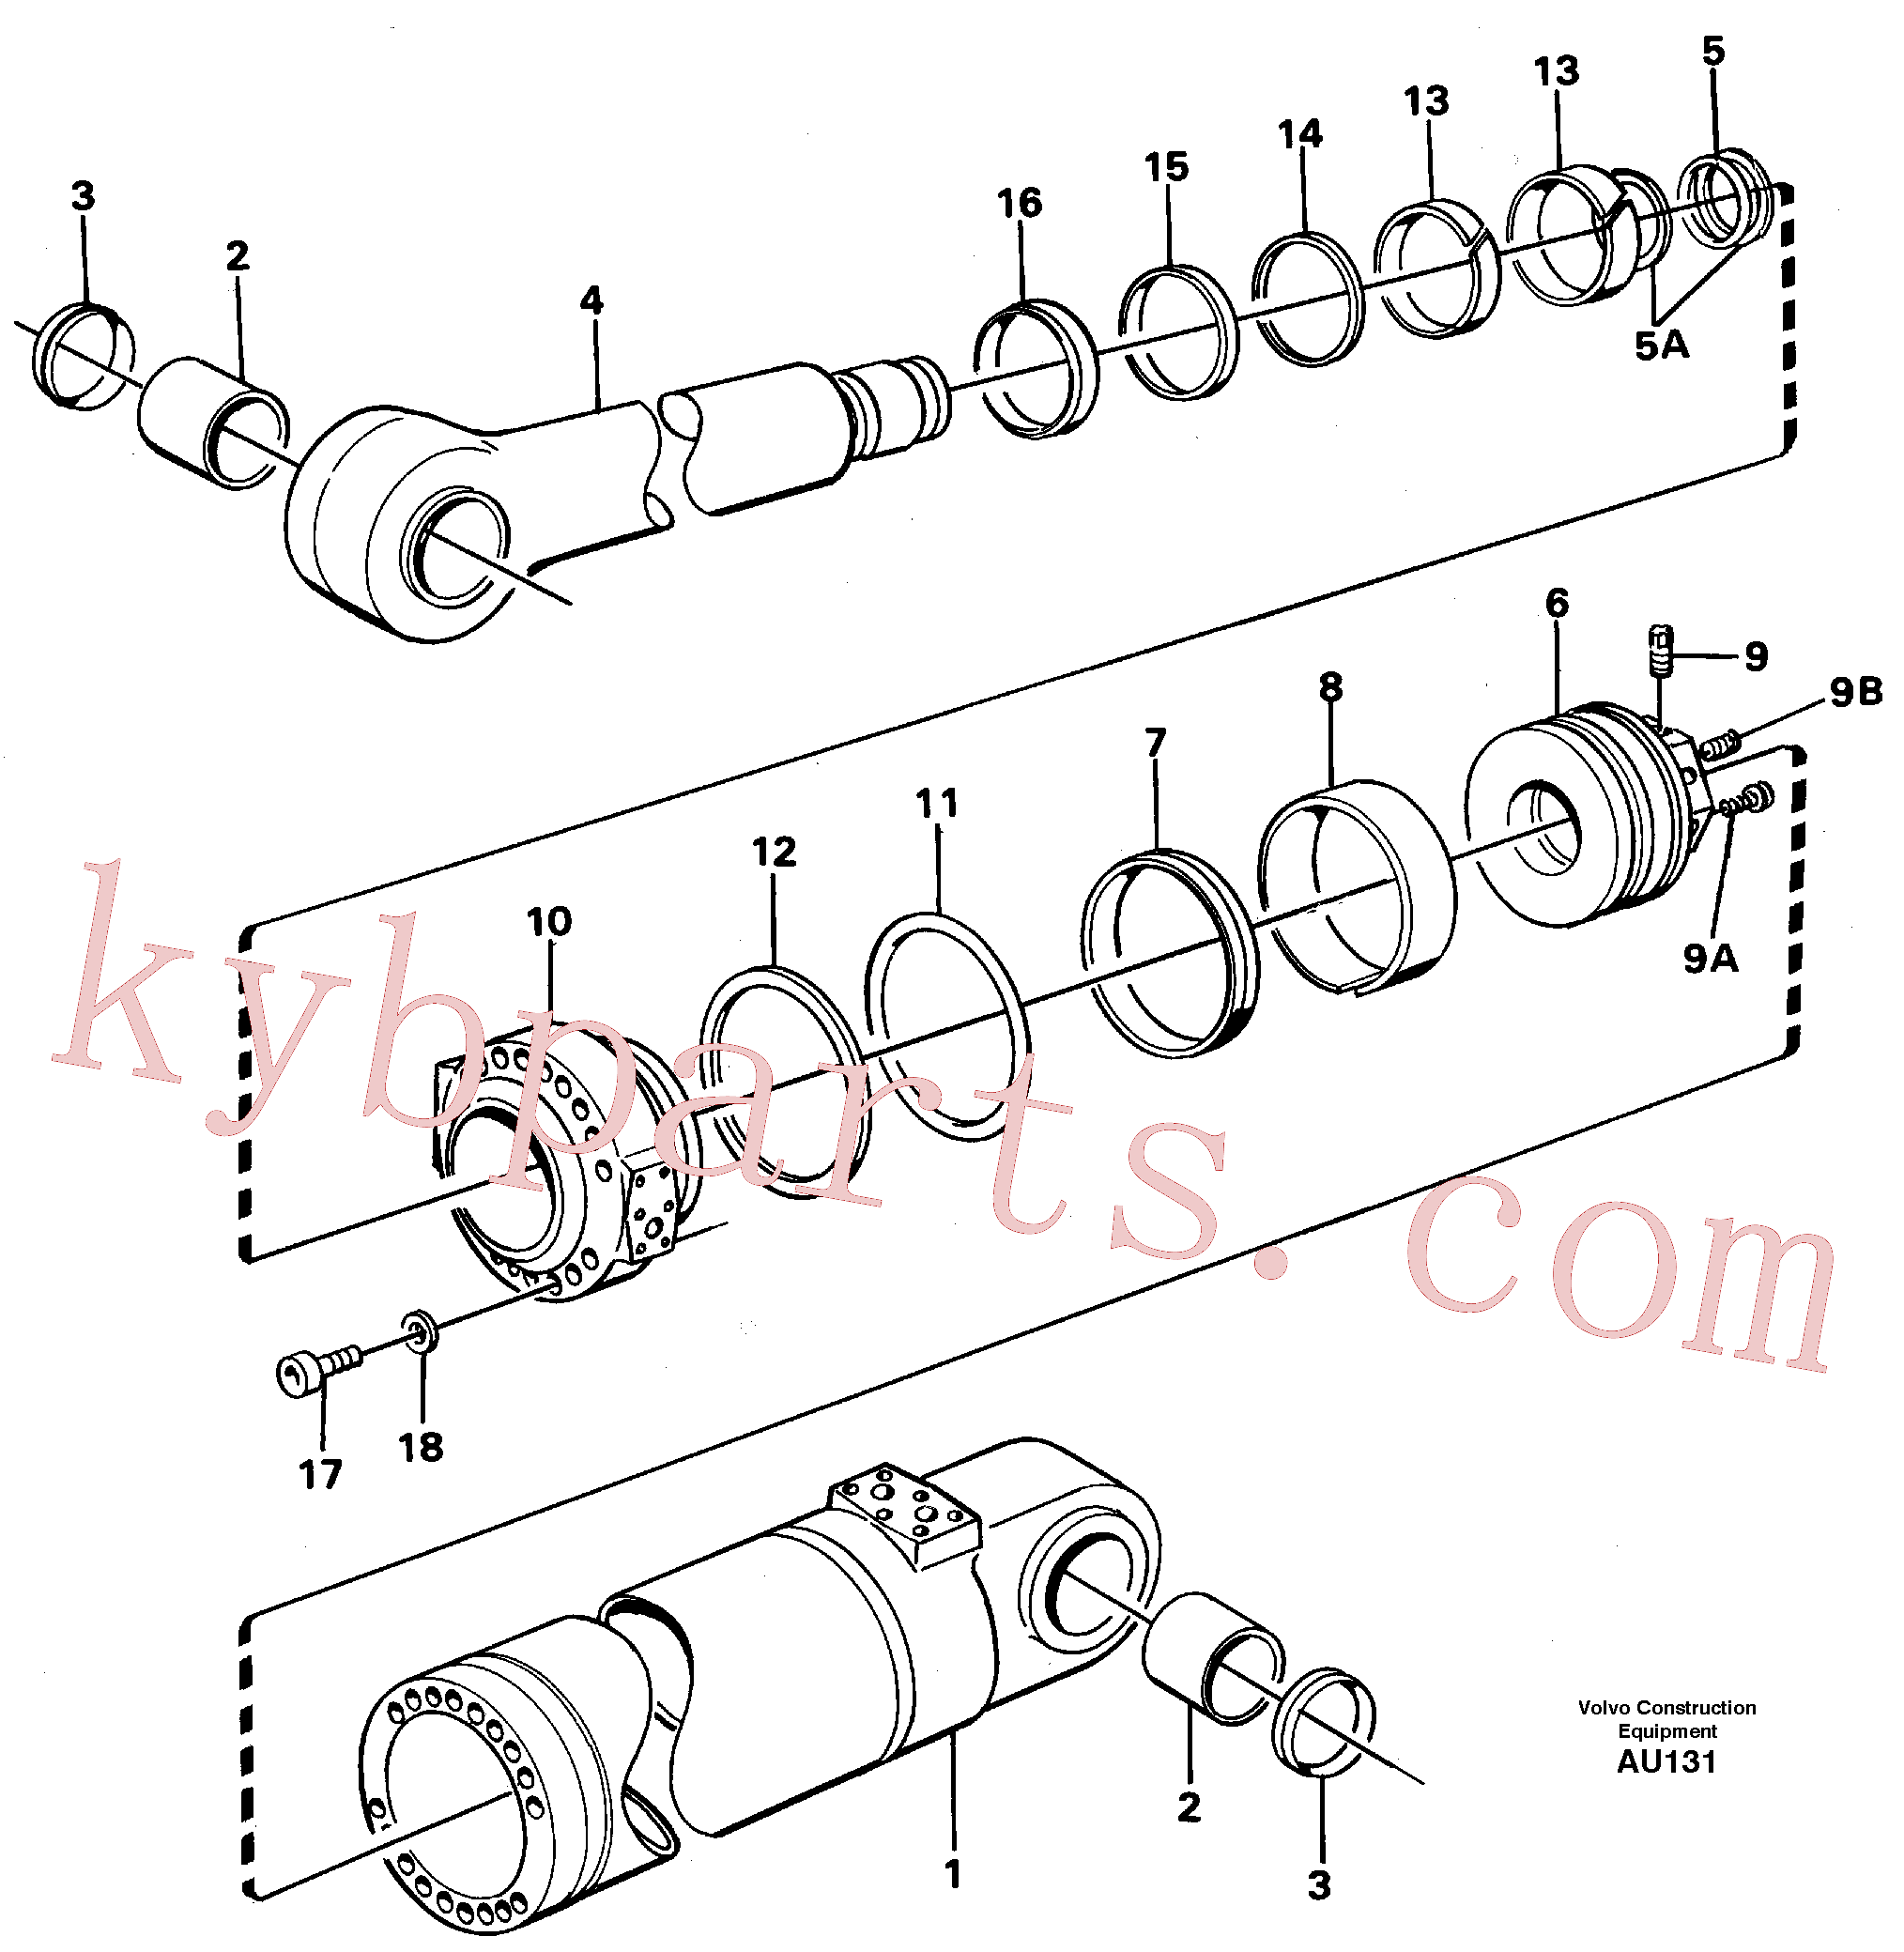 VOE11088496 for Volvo Hydraulic cylinder, tilt(AU131 assembly)